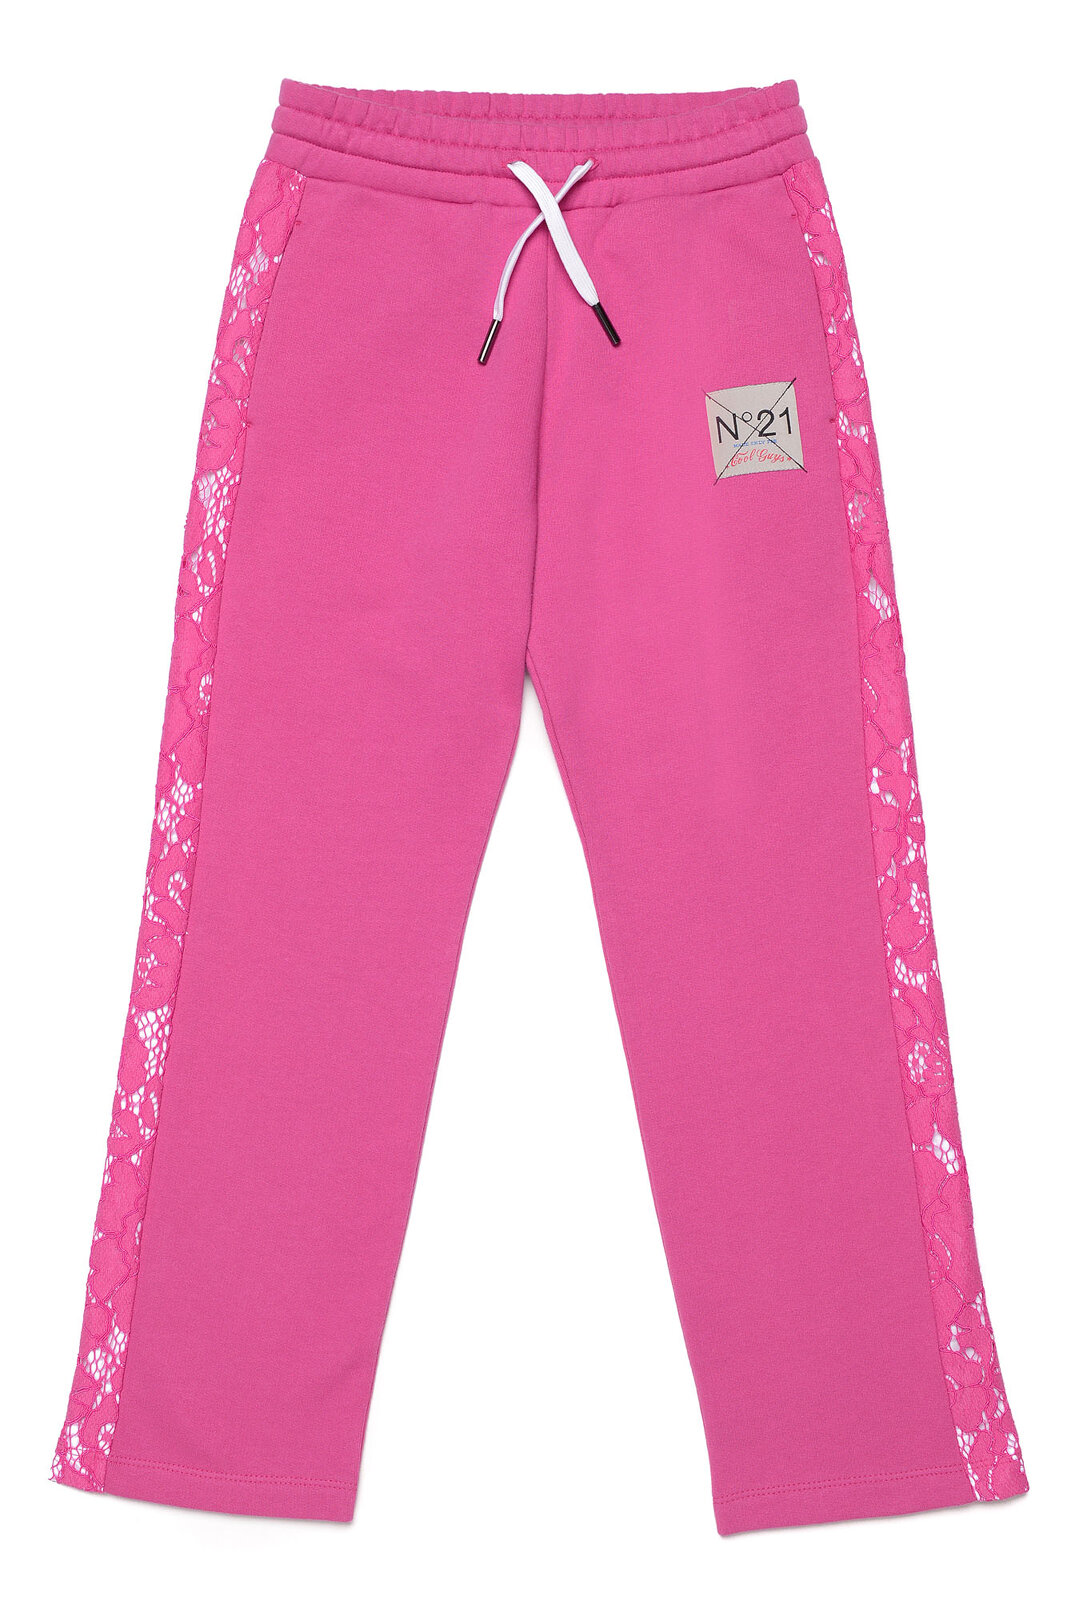 Trousers - N21 Junior